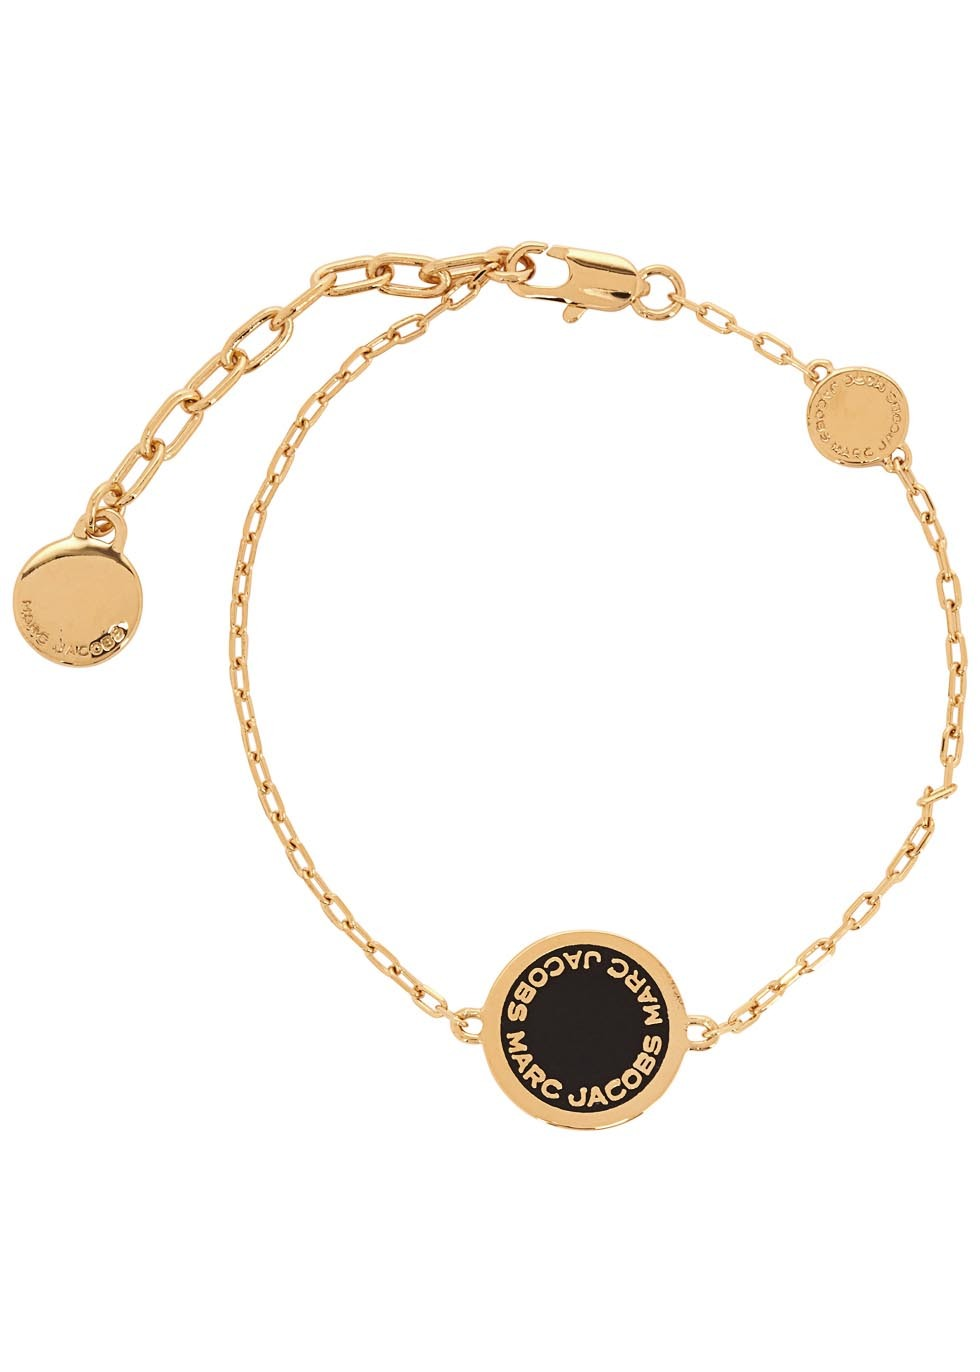 Logo Disc Gold Tone Bracelet - predominant colour: gold; secondary colour: black; occasions: casual, work, creative work; style: chain; size: standard; material: chain/metal; finish: metallic; season: s/s 2016; wardrobe: basic